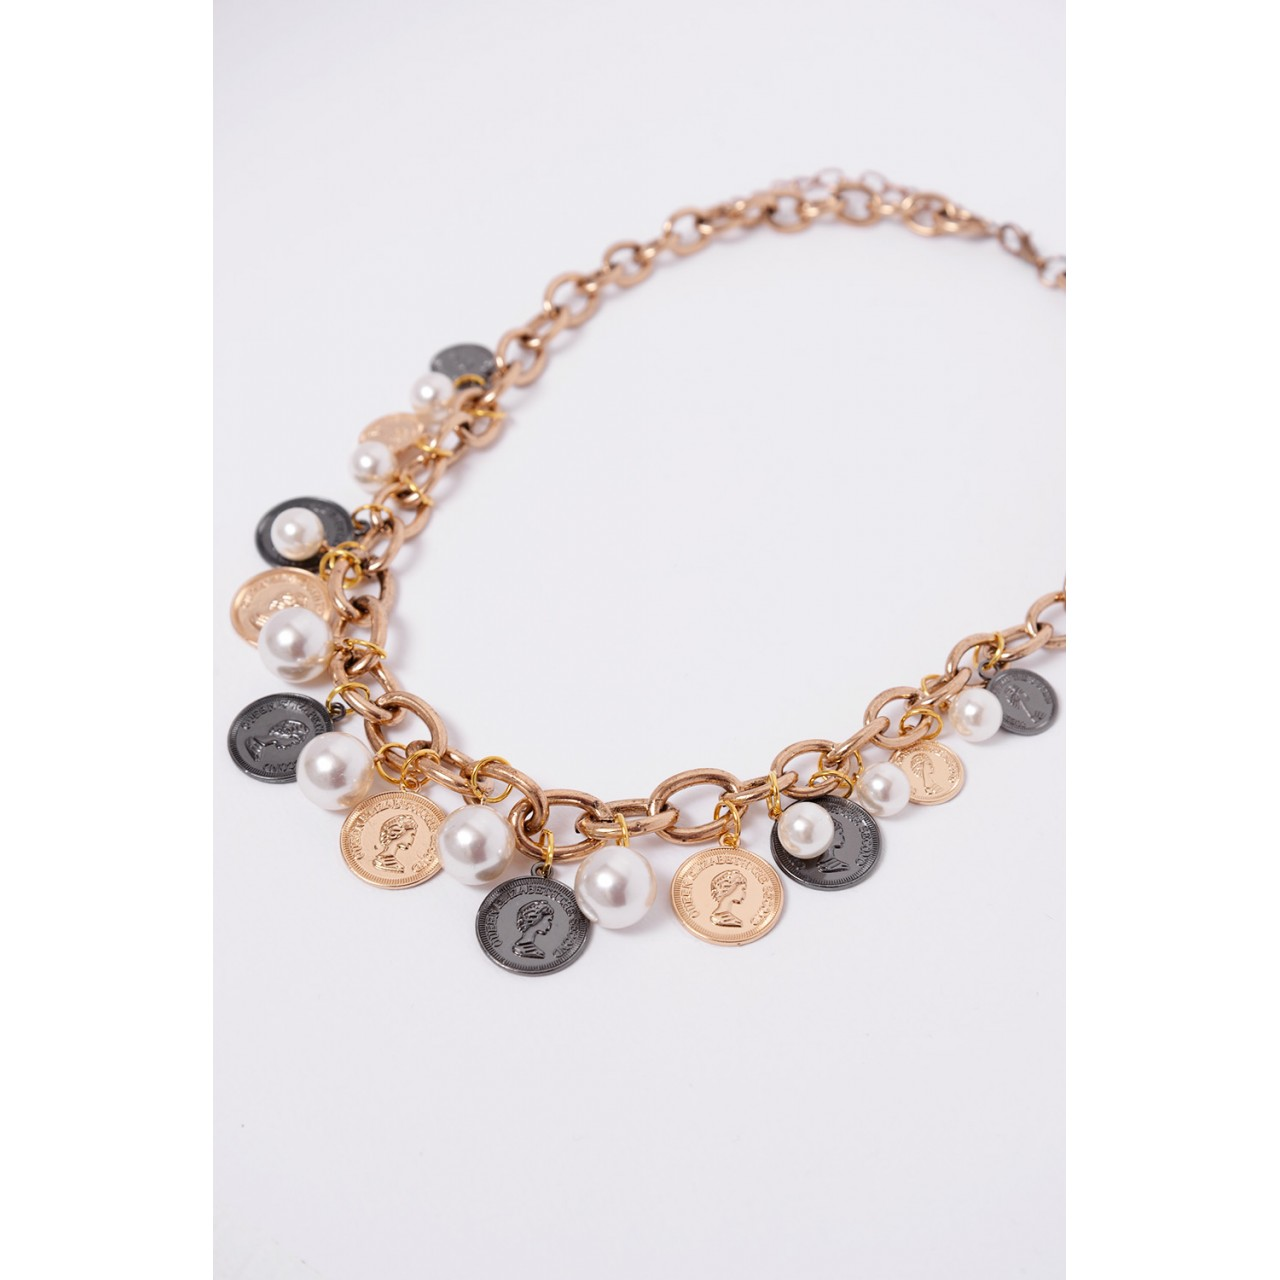 Chains necklace with coins & pearls